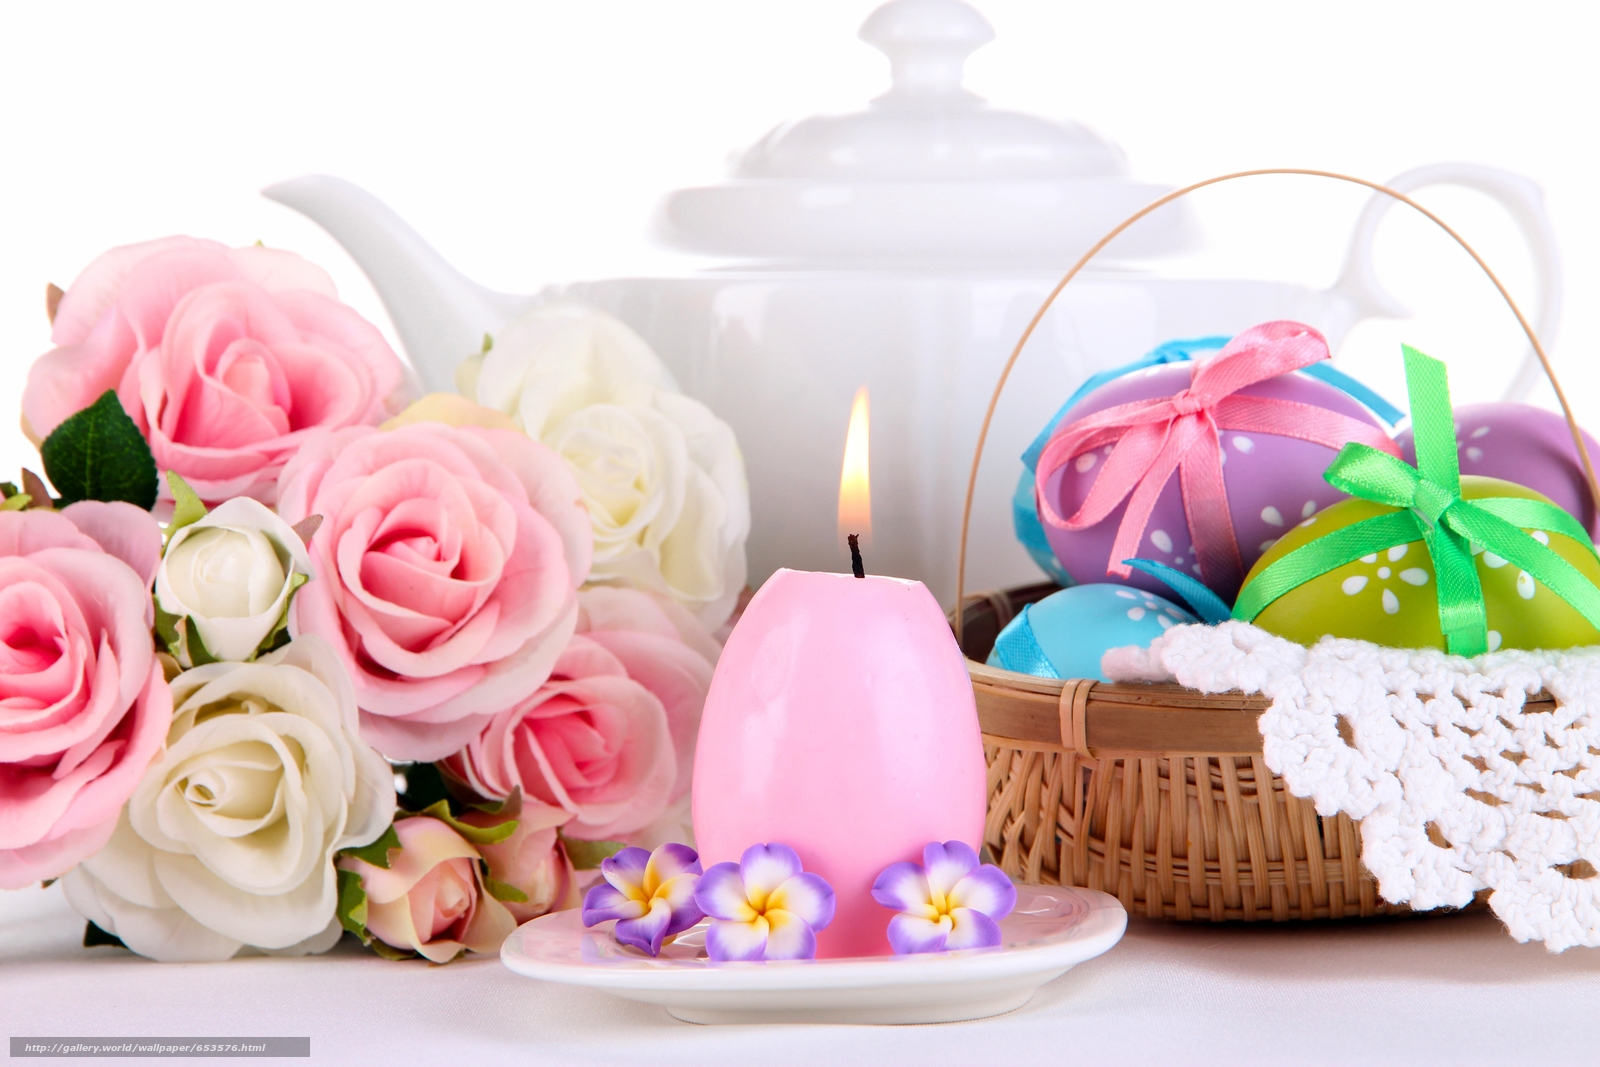 Download wallpaper Easter,  eggs,  Krashenki,  candle free desktop wallpaper in the resolution 5184x3456 — picture №653576